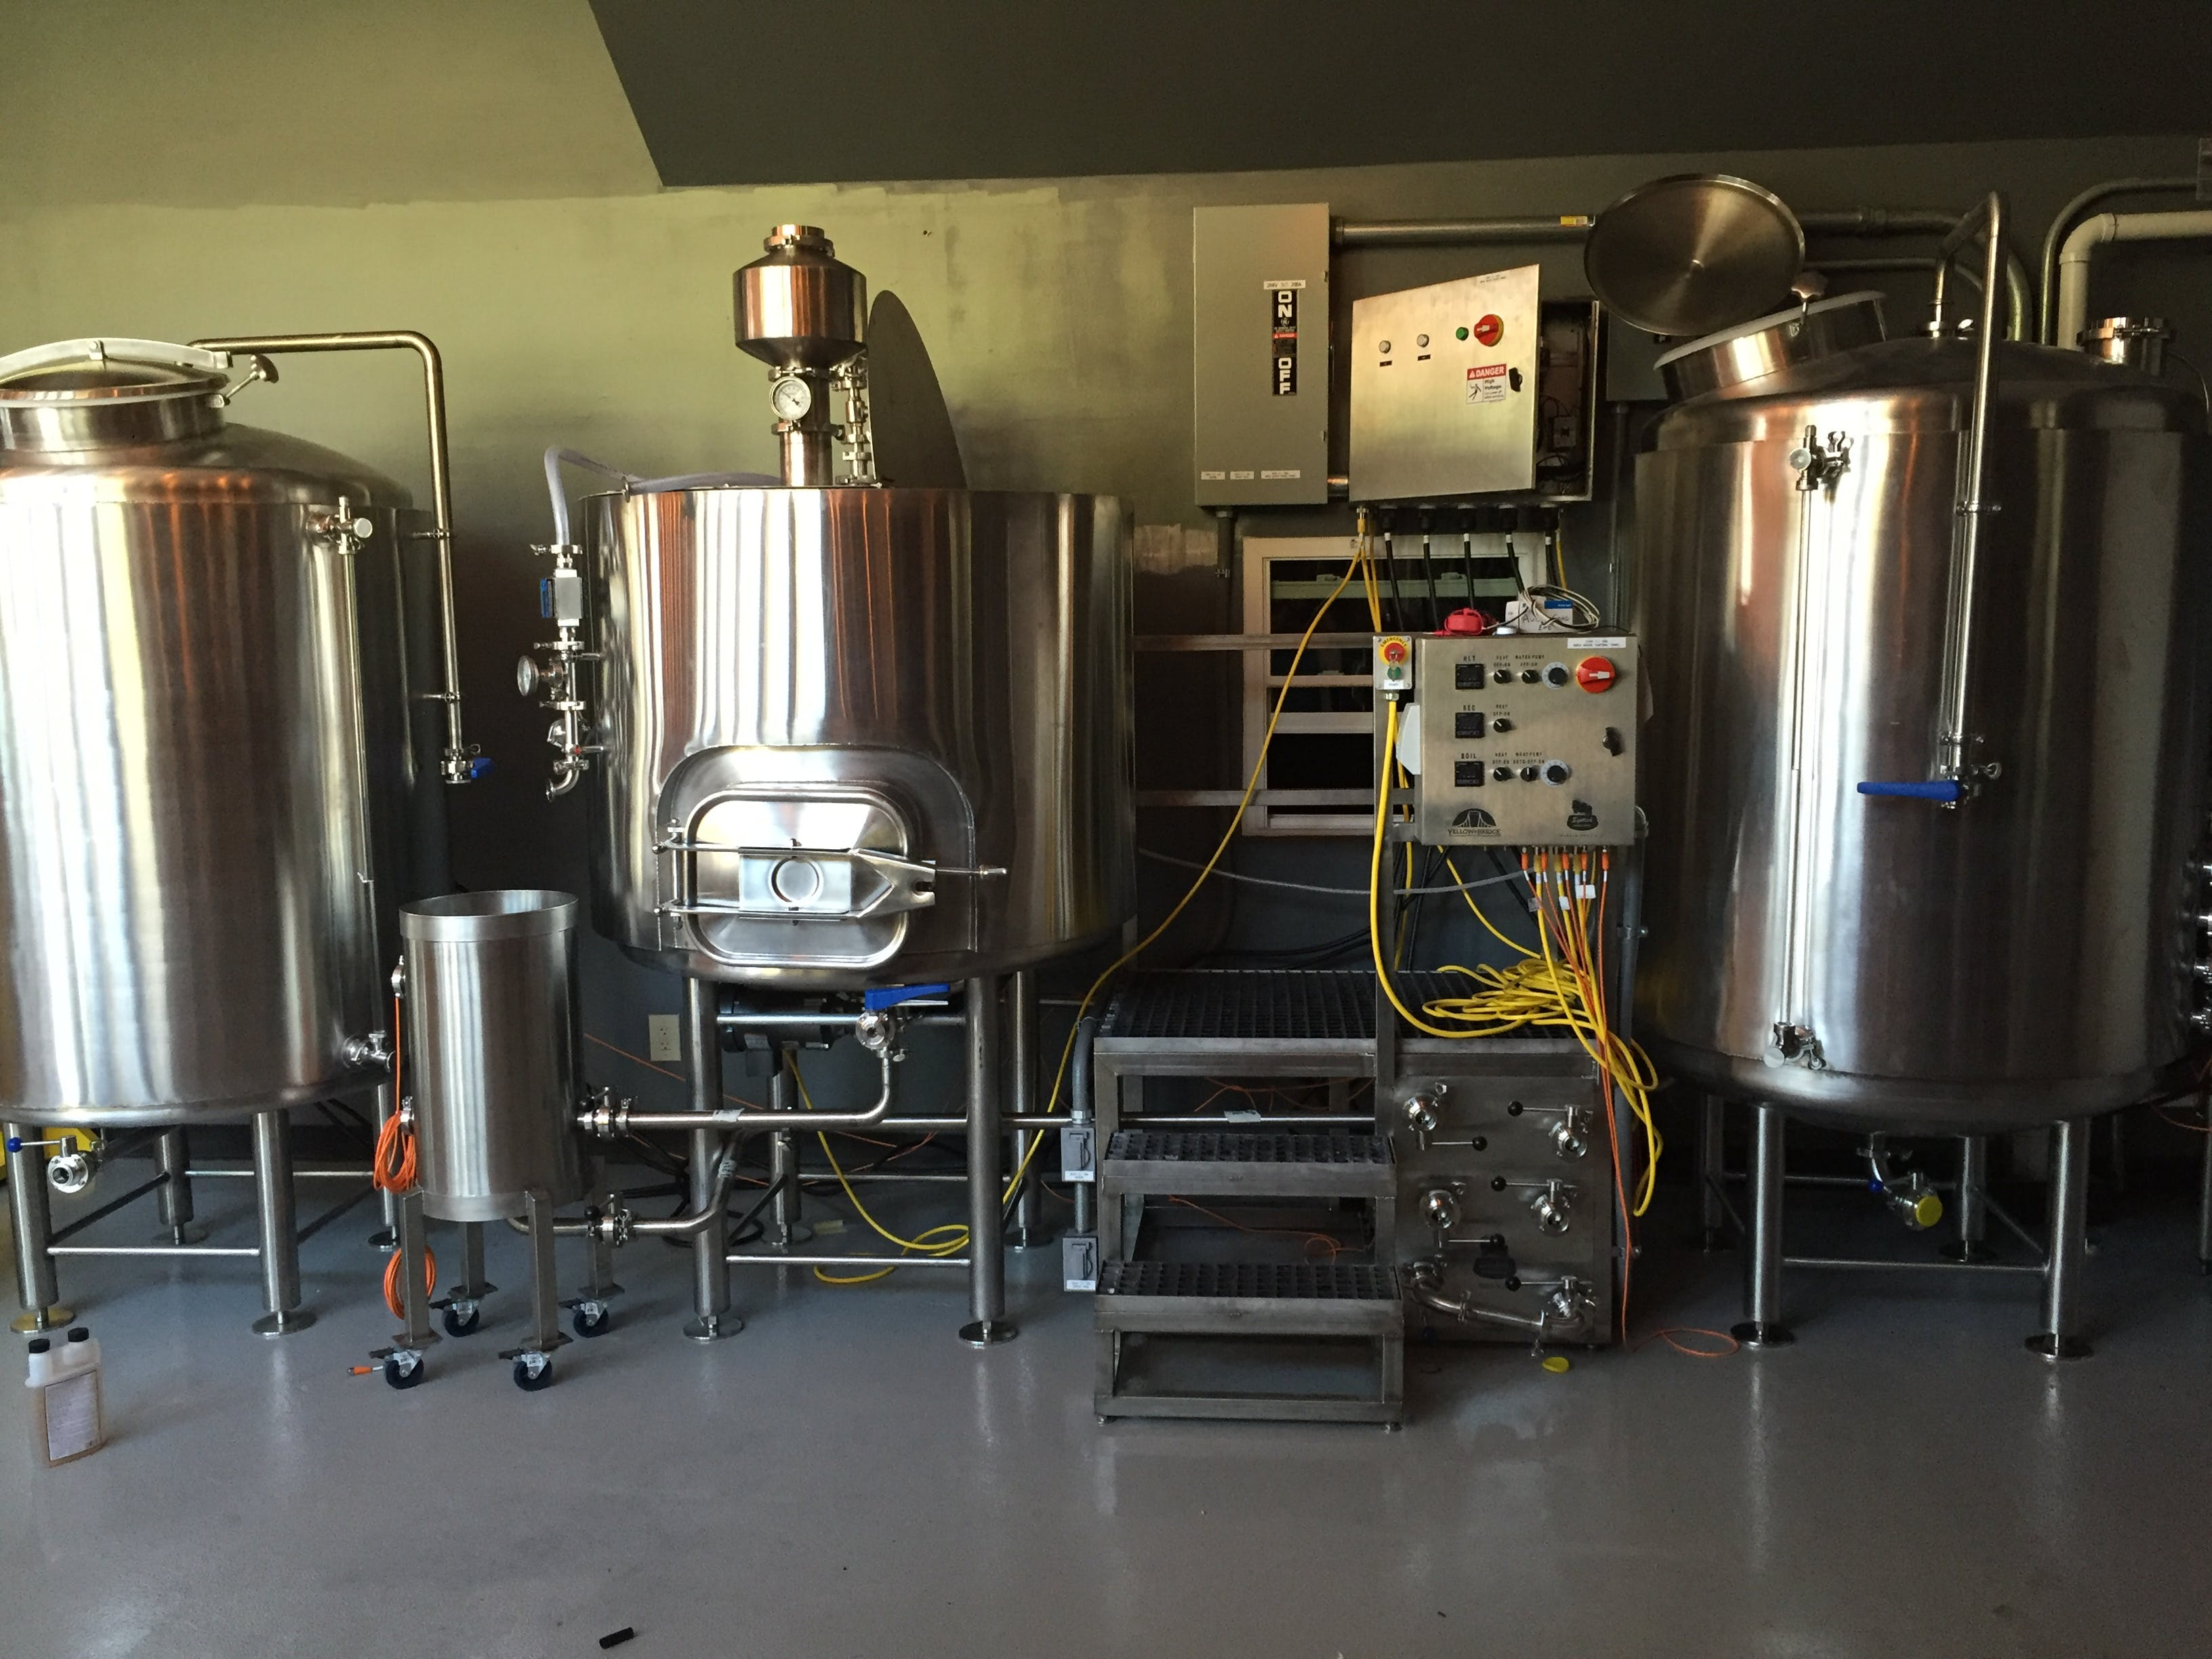 Systech 7BBl Brewhouse Brewhouse sold by Systech Stainless Works, LLC